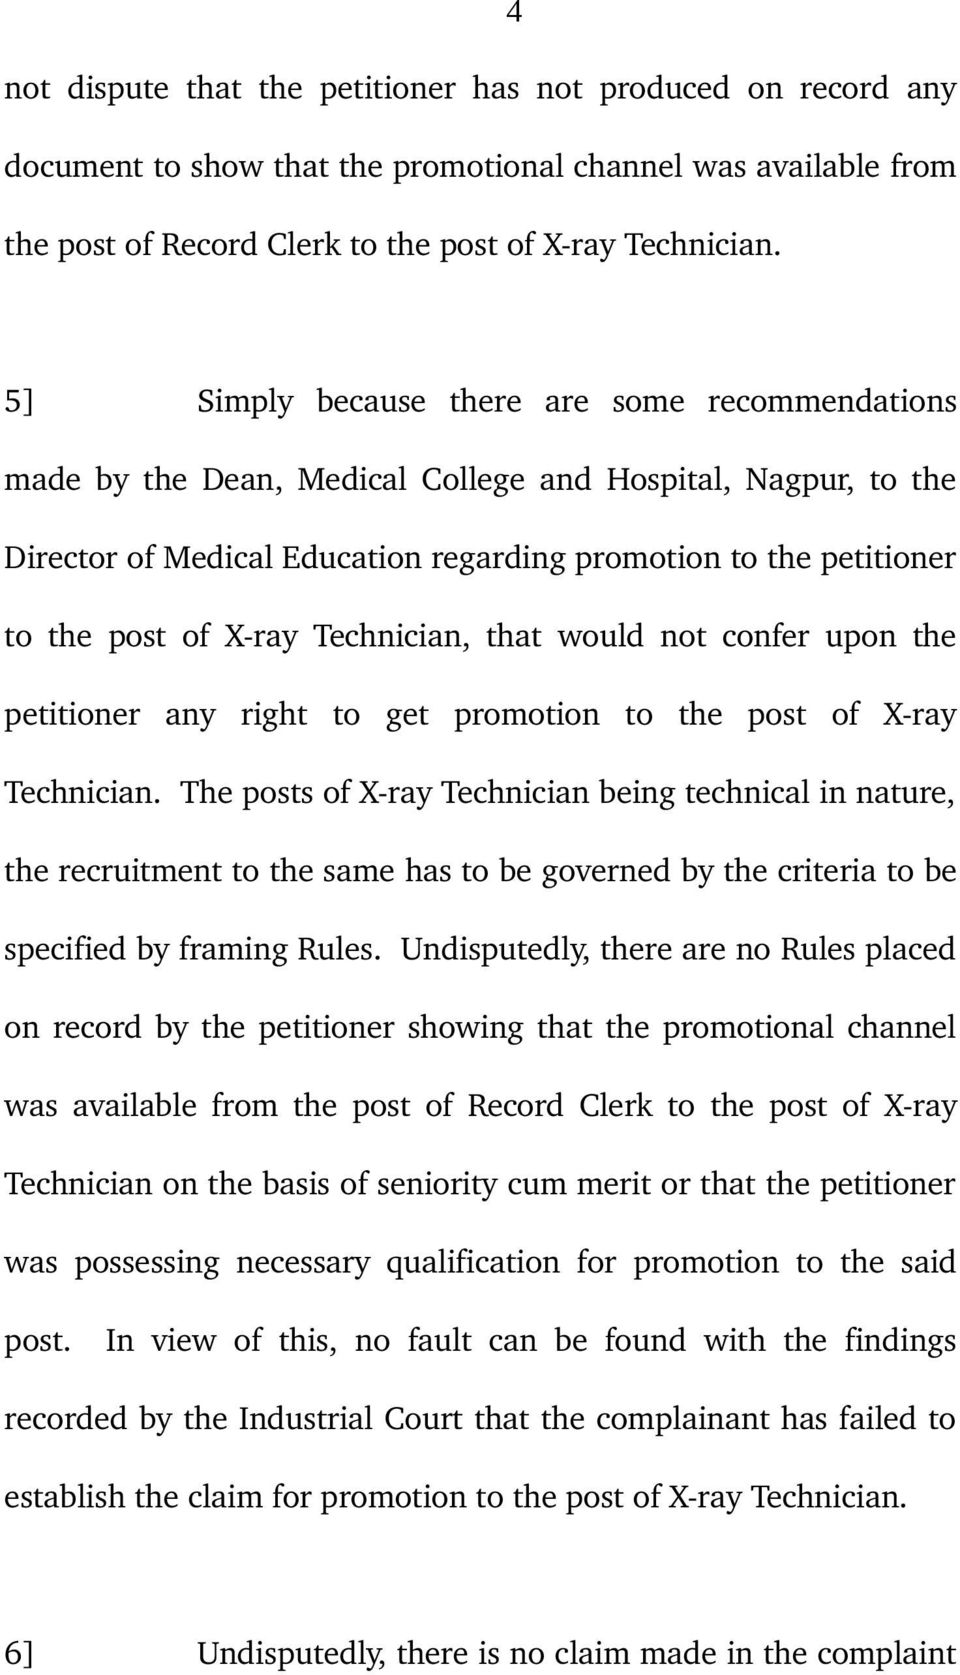 ray Technician, that would not confer upon the petitioner any right to get promotion to the post of X ray Technician.